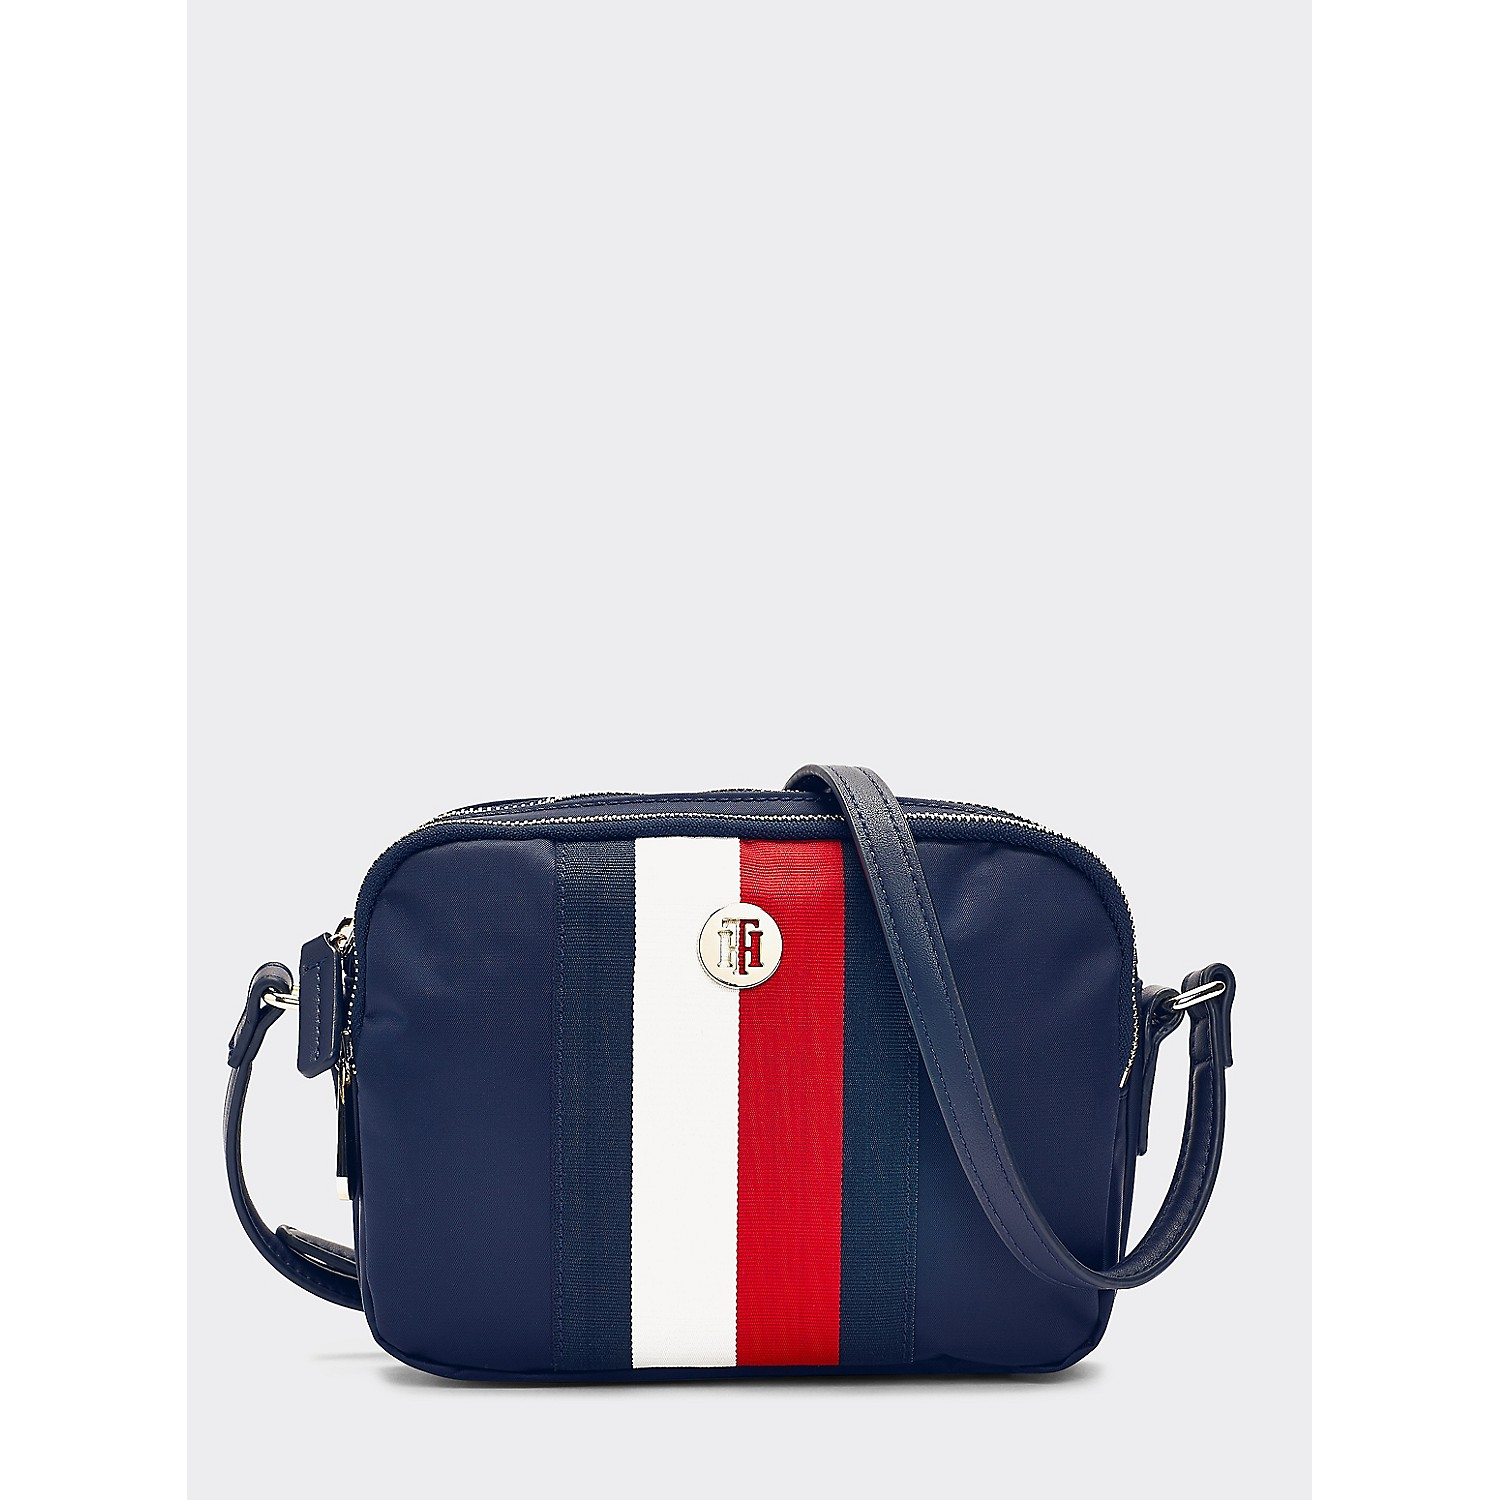 Tommy hilfiger Nylon Stripe Crossbody Bag